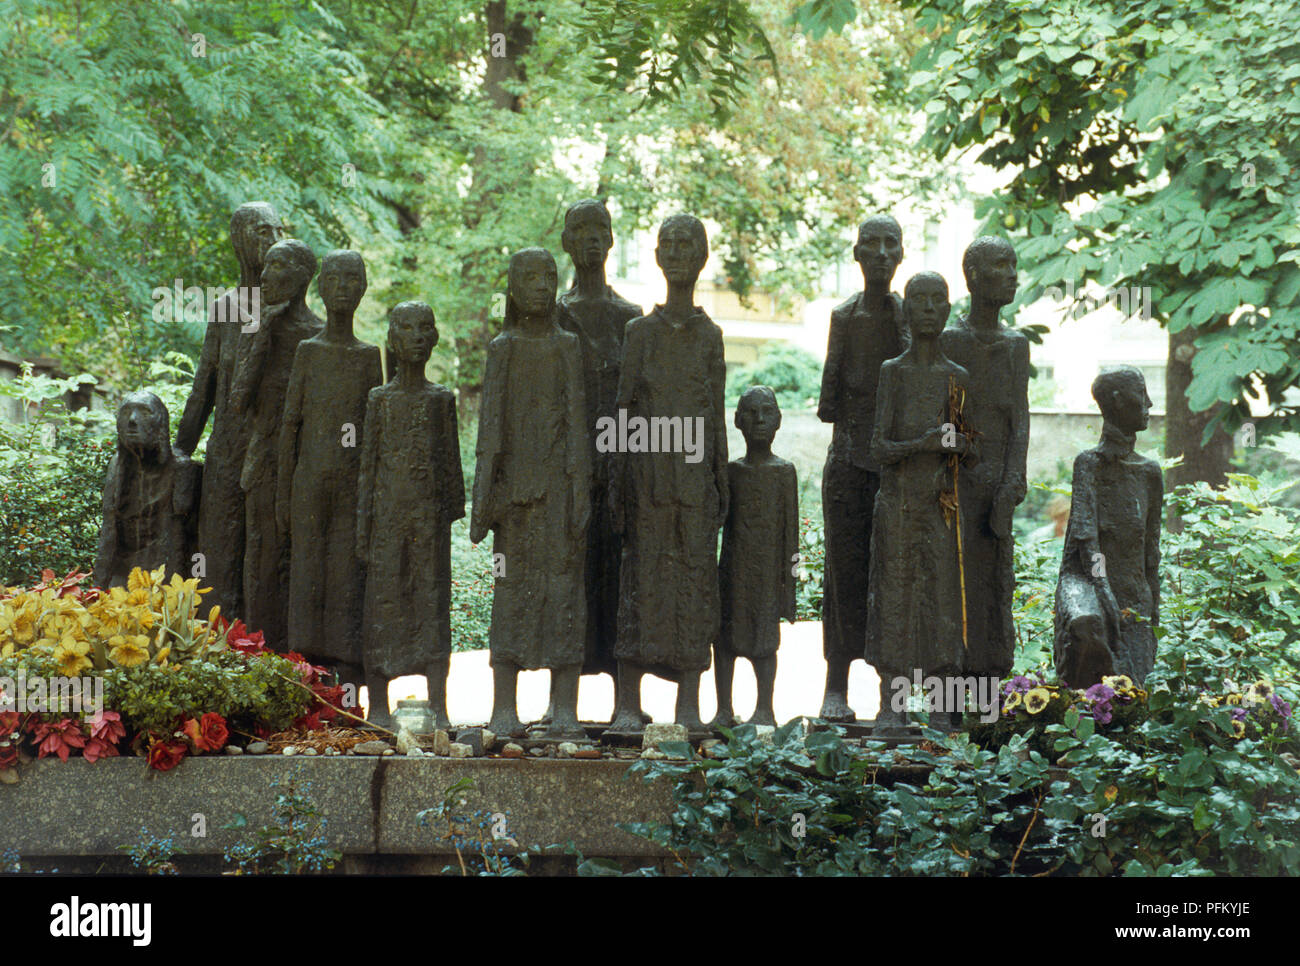 Germany Berlin Mitte Grosse Hamburger Strasse Gedenkstaette Grosse Hamburger Strasse Statues Erected In Commemoration Of Berlin Jews Murdered In The Holocaust Stock Photo Alamy